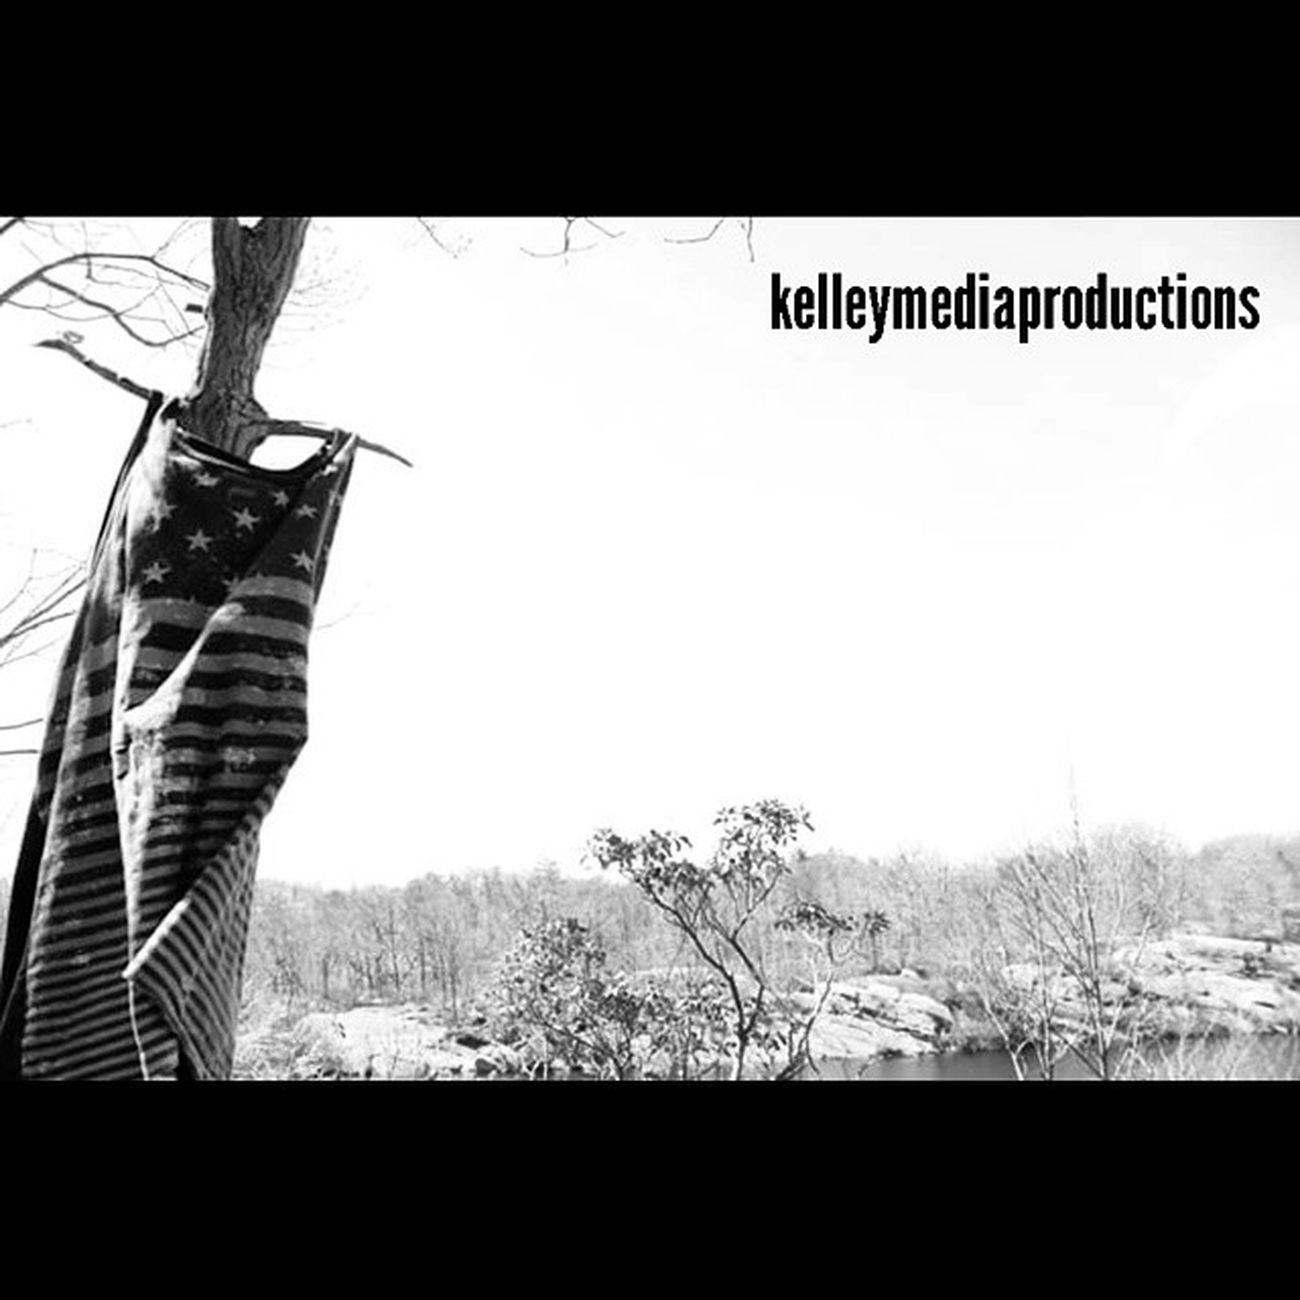 Trees wear clothes sometimes too. Kelleymediaproductions Nature Naturephotography Outdoor Hiking Hikingphotography Blackandwhite Blackandwhitephotography Photographersofinstagram Amateurphotographer  Americanflag Tanktop Skies Stayrad